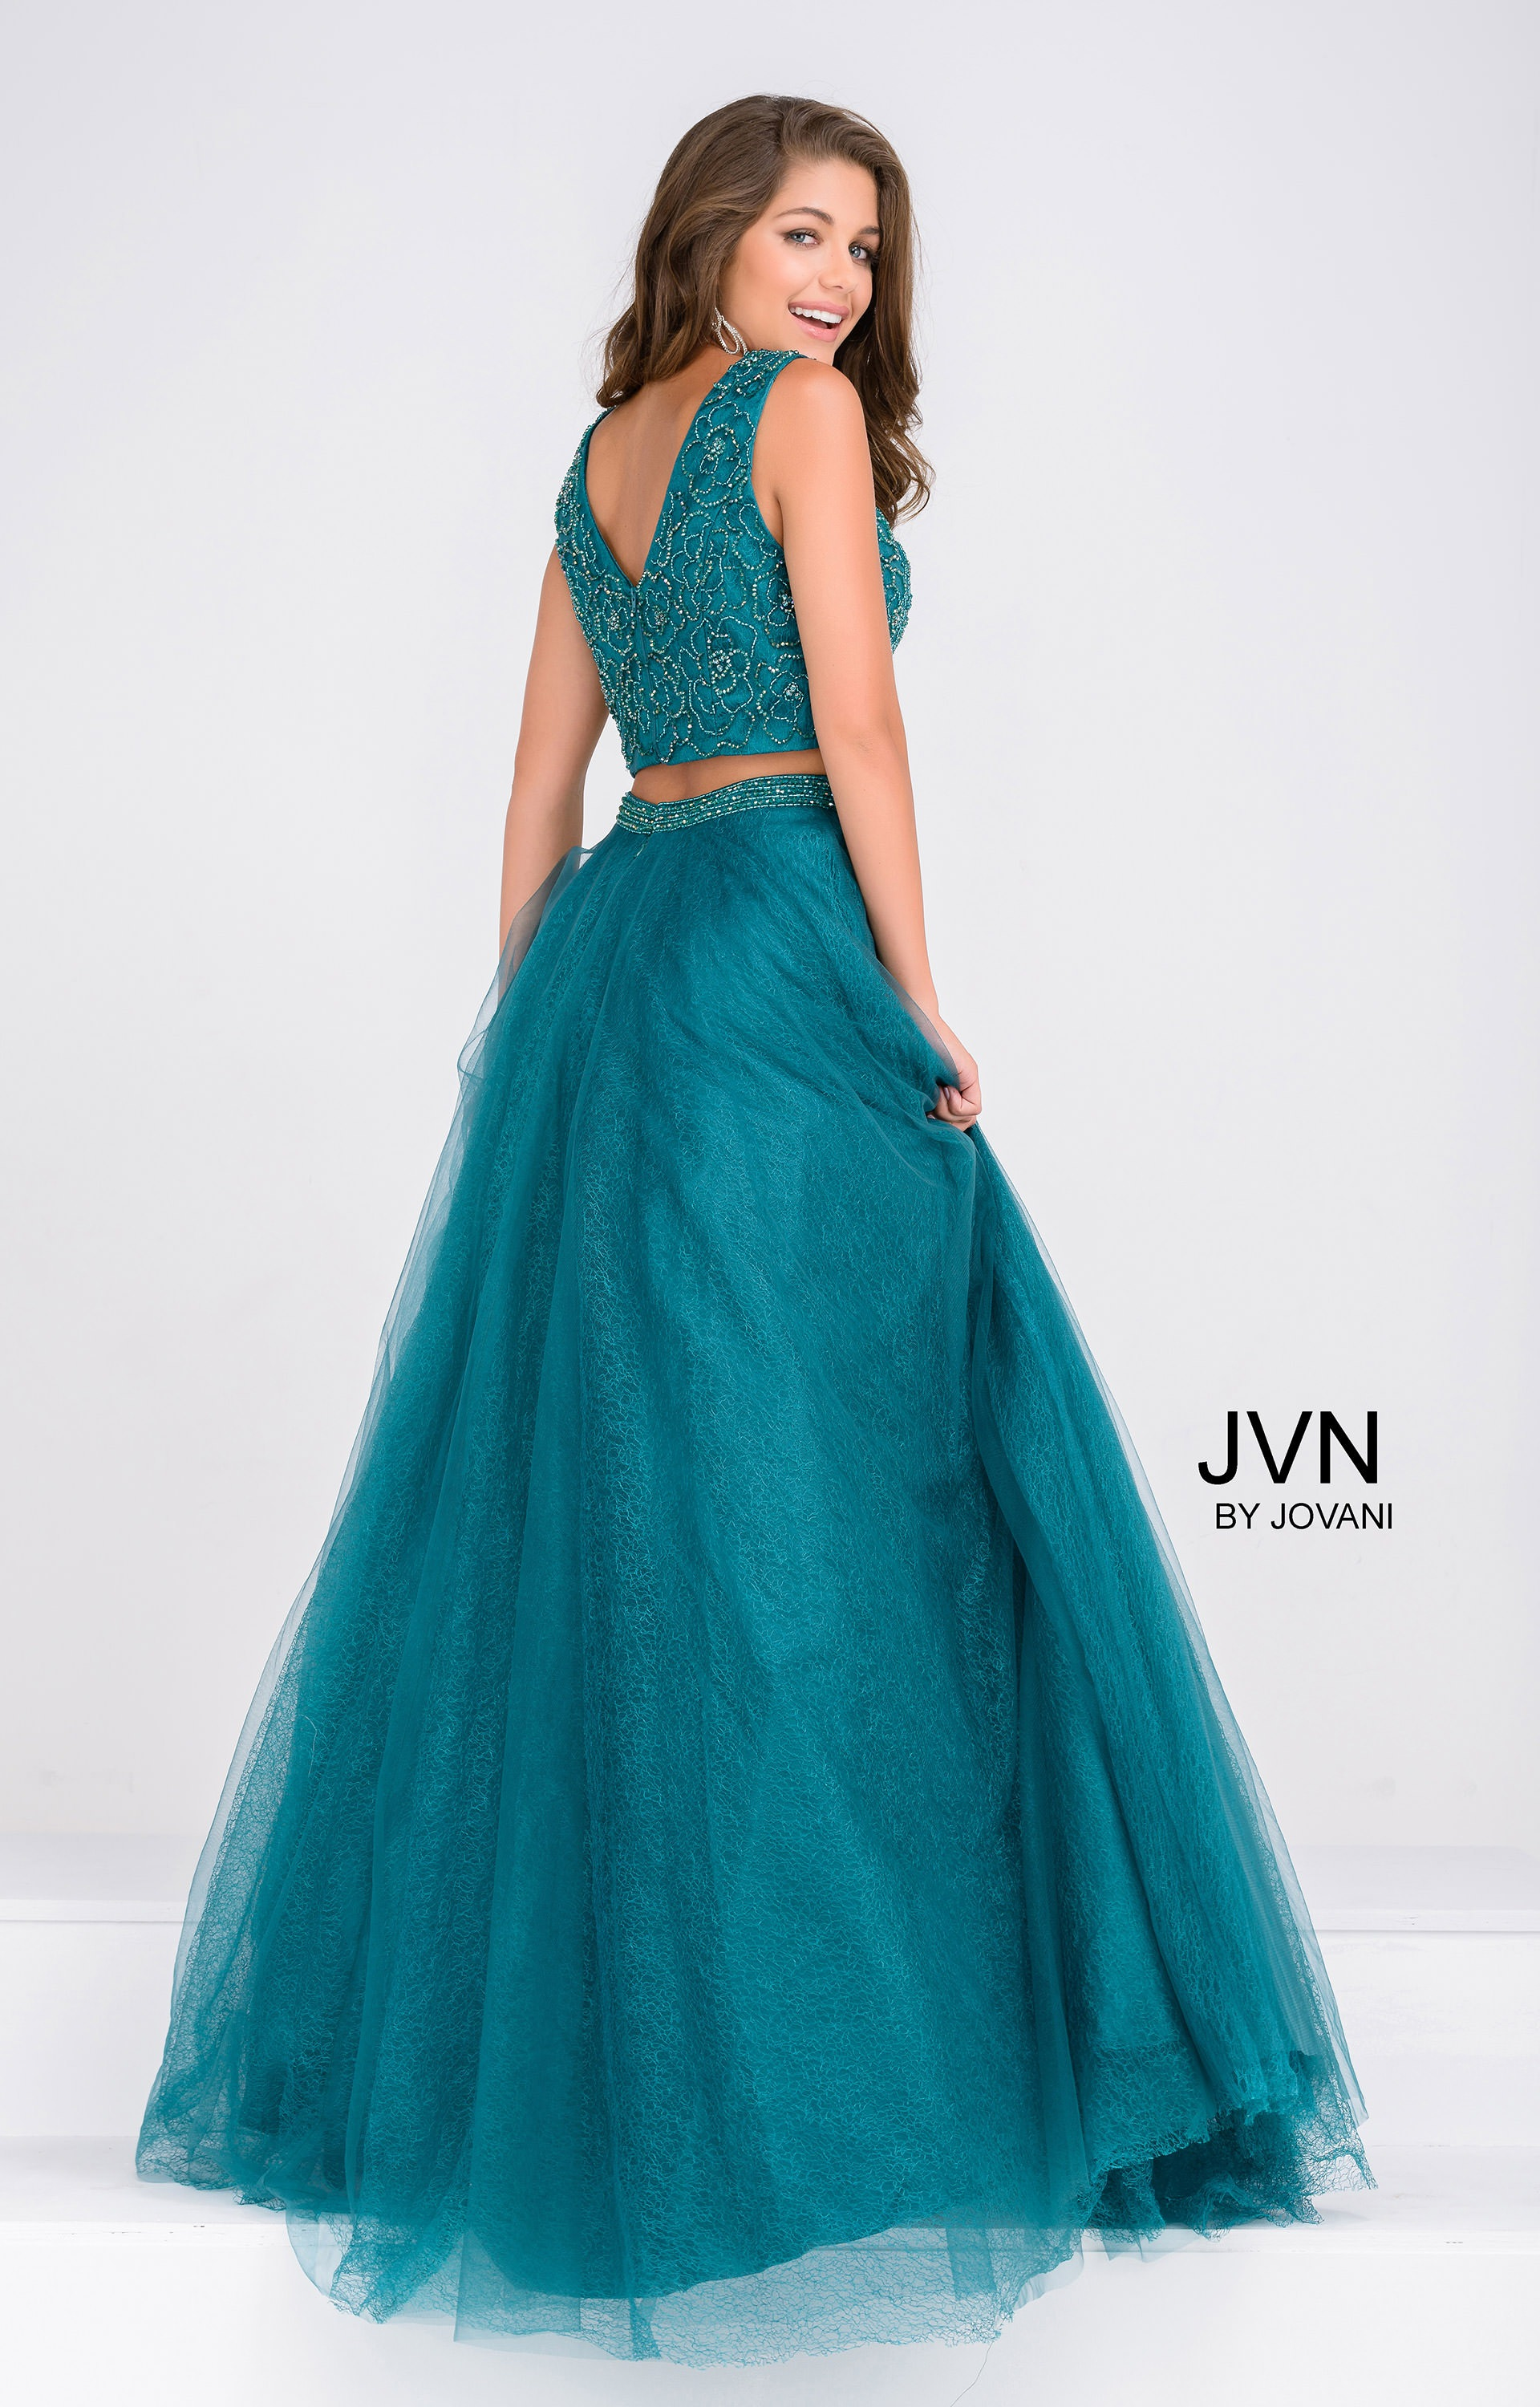 Jovani jvn47919 - Sleeveless Two-Piece with Lace Applique and ...